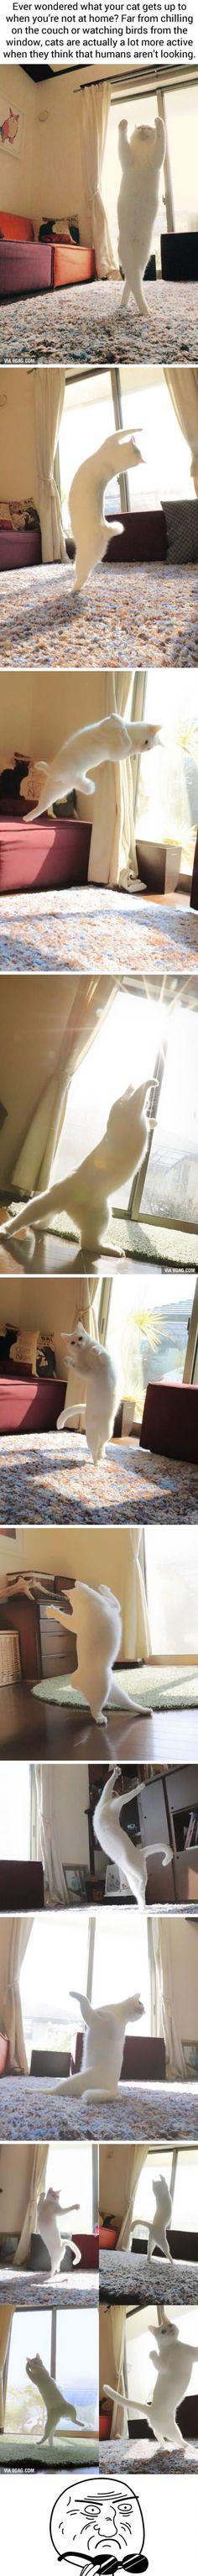 Ballet Cat Dances Like Nobody's Watching (@ccchisa76)